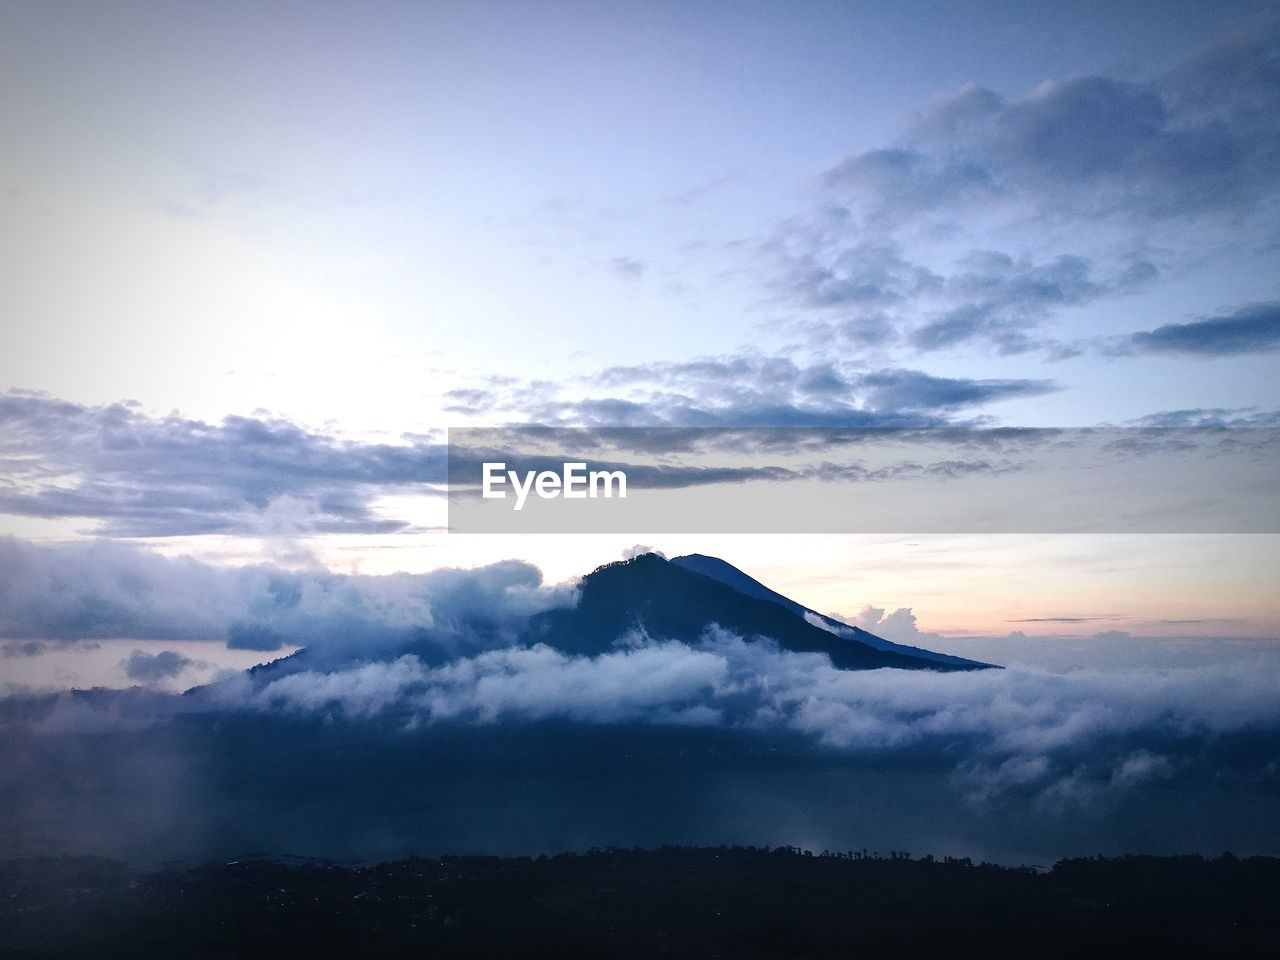 SCENIC VIEW OF DRAMATIC SKY OVER SILHOUETTE MOUNTAIN